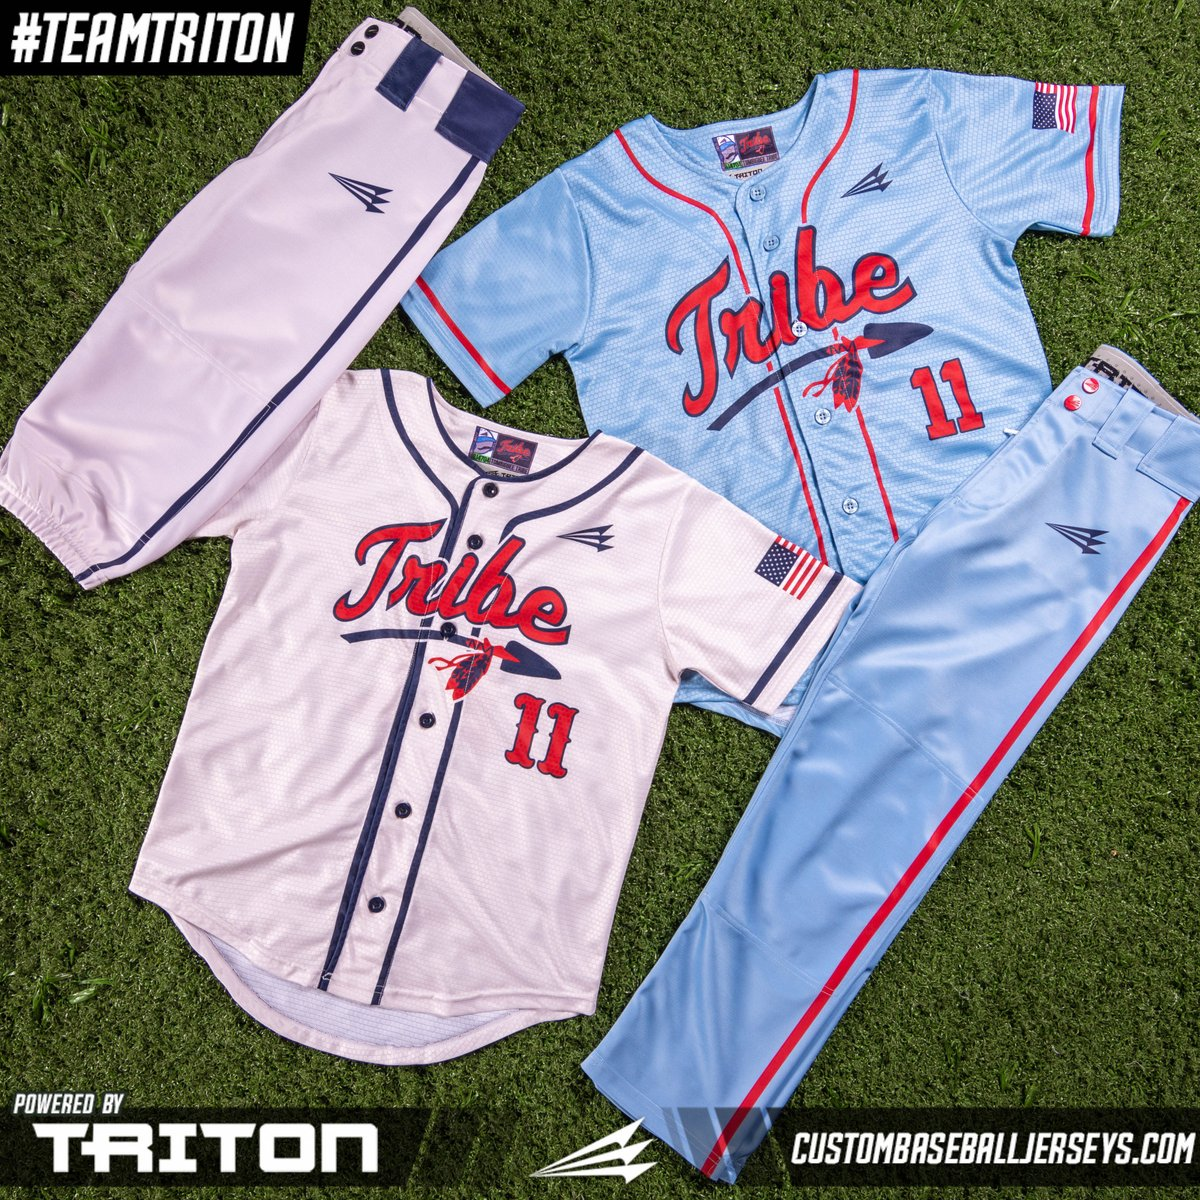 The Tombigbee Tribe 10U in Mississippi is wearing #Triton Relaxed and Knicker pants. What's your pick? 👍Knickers. 🙋♂️Relaxed. Find out more here.   #teamtriton #custom #authentic #original #baseball #jerseys #baseballjersey #baseballswag #swag